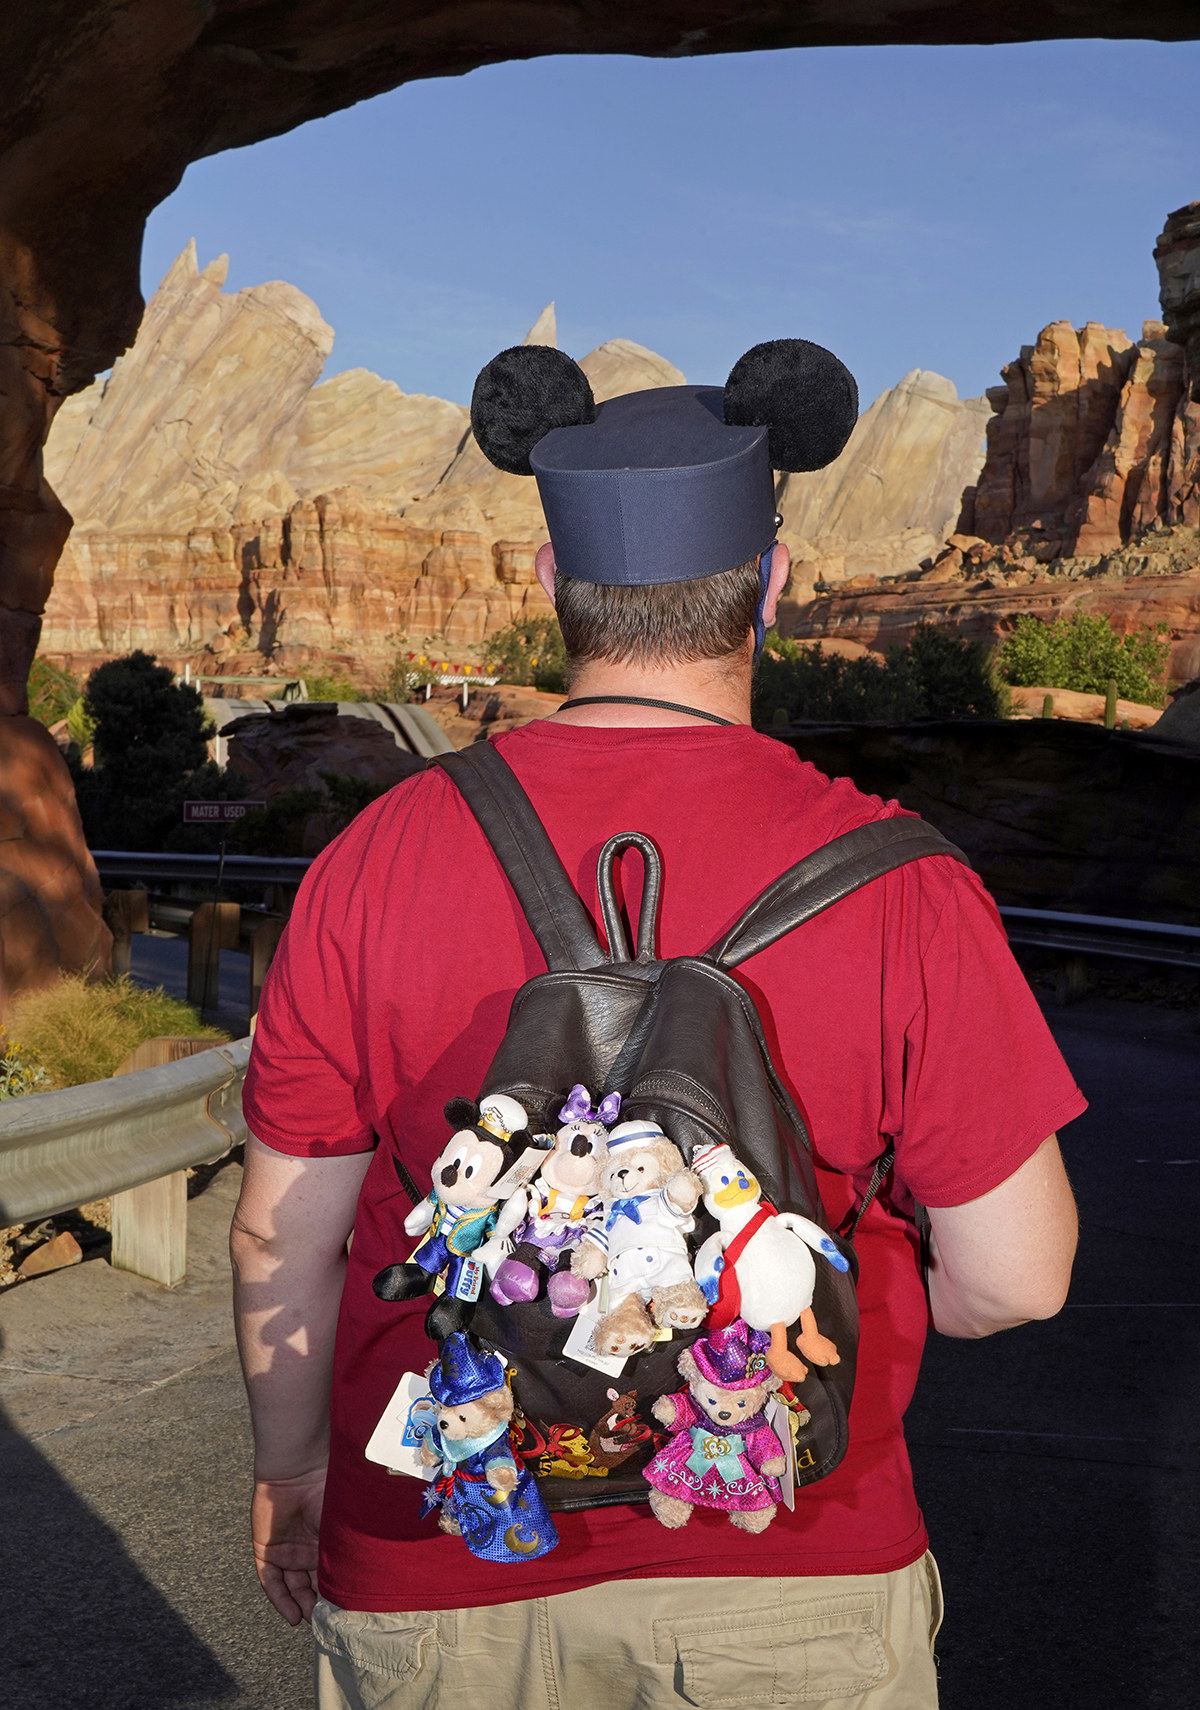 A man photographed from behind wearing Mickey ears and a backpack full of Disney keychains